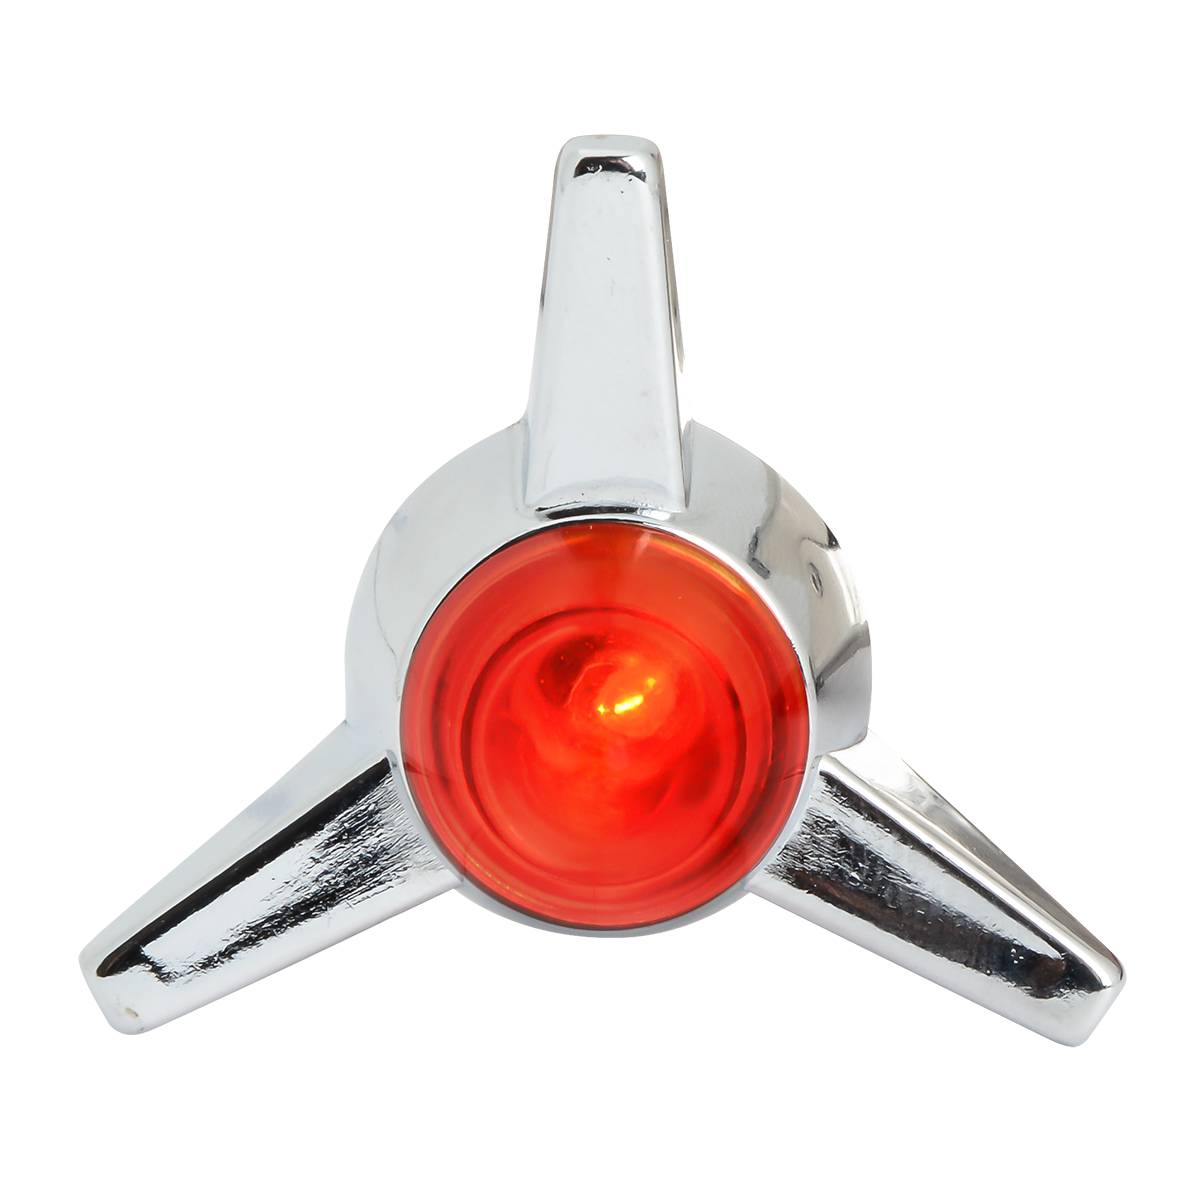 Spinner Style Lighted Fastener Set - Red